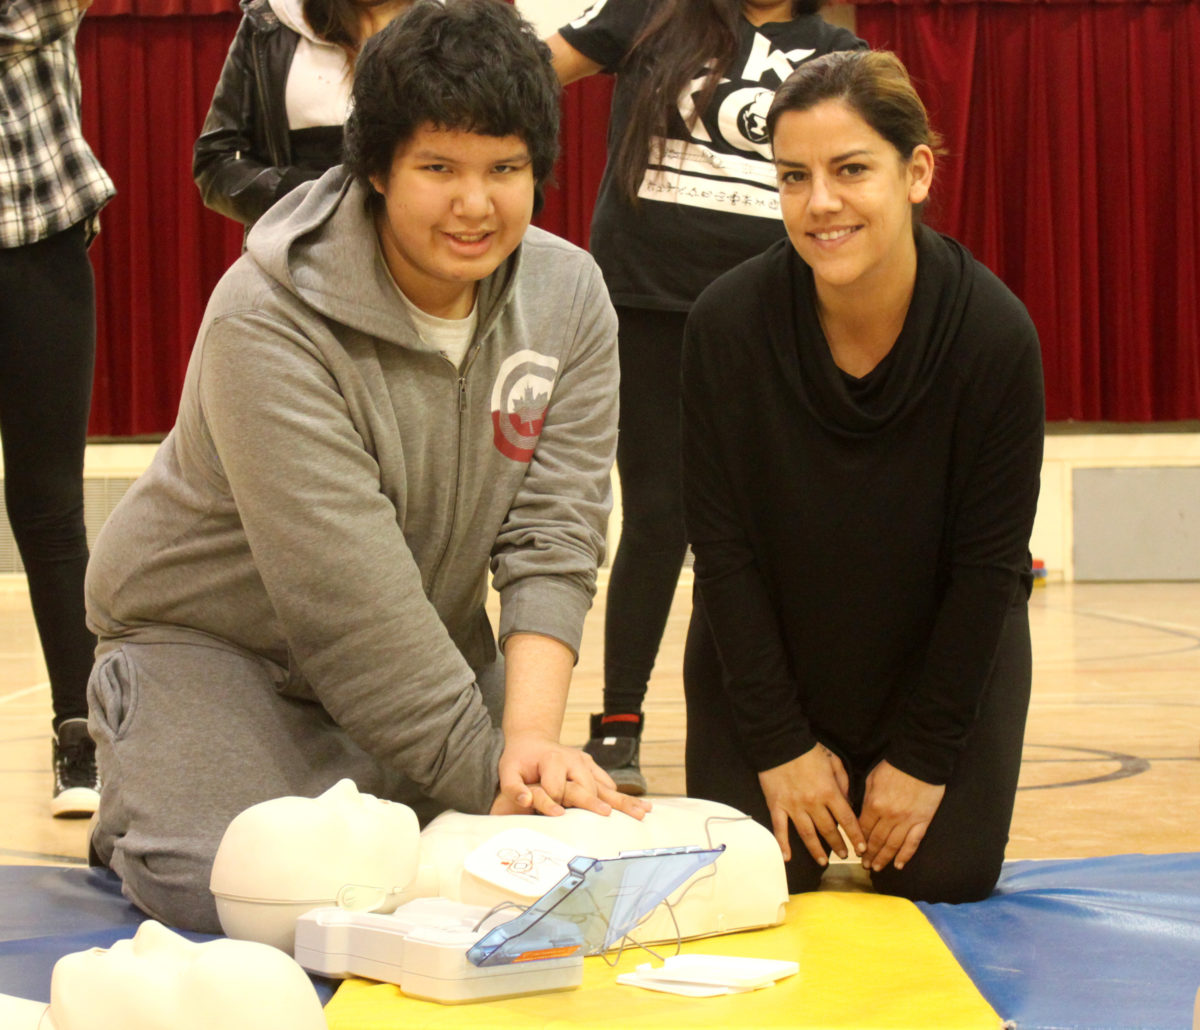 More than 200 students and community members in First Nation Communities of Whitedog and Grassy Narrows to be empowered  with lifesaving skills